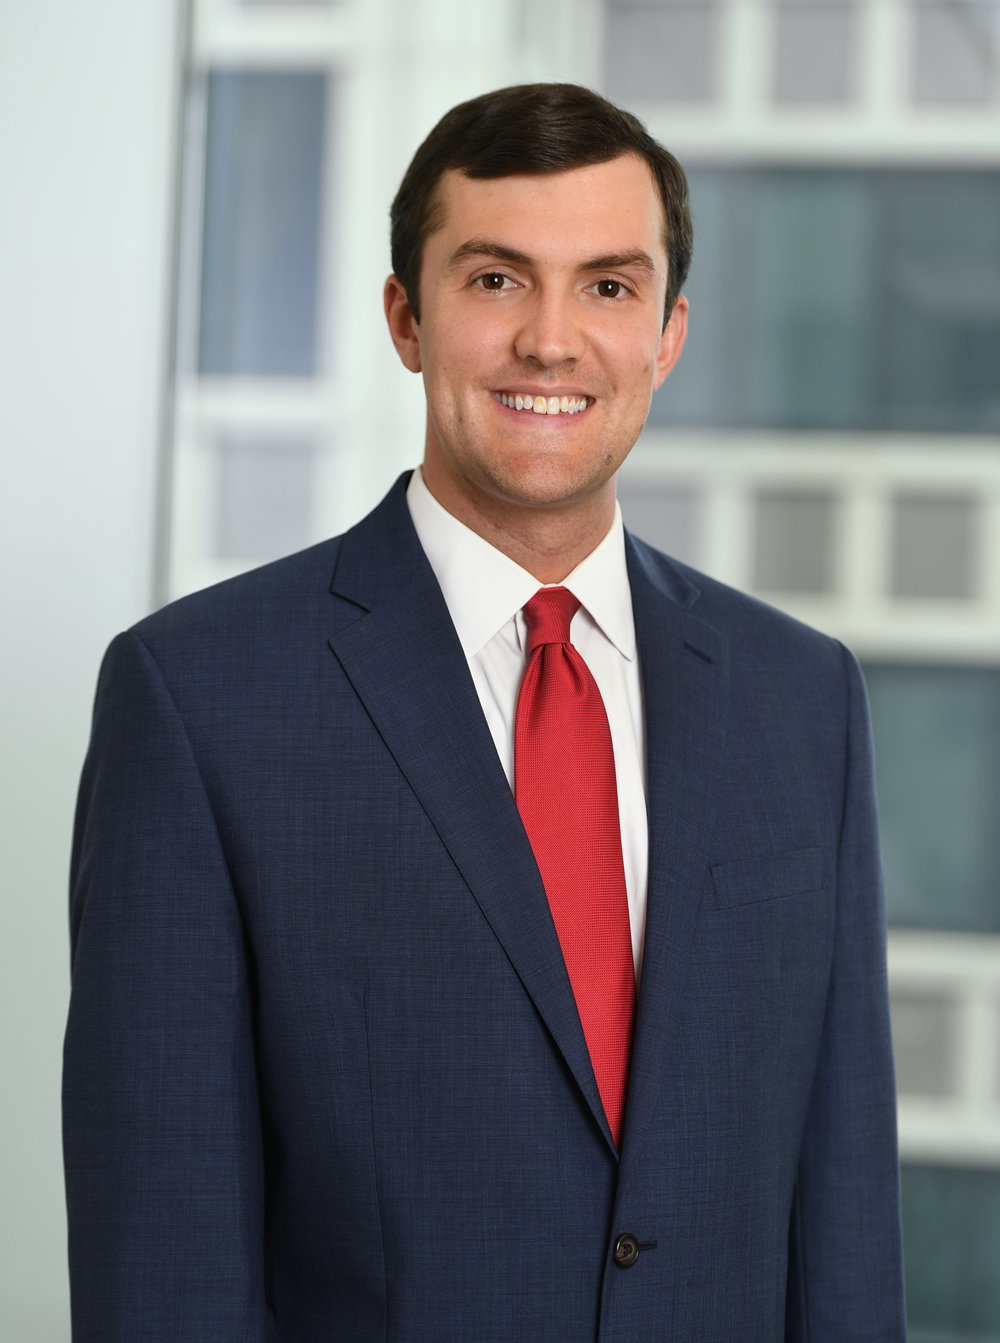 Kirk A. Whitehead  is the Investment Associate of TSG. Mr. Whitehead is responsible for providing investment analysis and underwriting for TSG in the sourcing and acquisition of multifamily property investments.  Previously, he served as an Investment Analyst for Global Endowment Management, where he was involved with growing and monitoring the ~$800 million Real Assets portfolio, which focused on real estate and energy investments. He also served as an Associate at Spartan Financial Partners, assisting with its lending portfolio.  Mr. Whitehead received a Bachelor of Arts degree from Wofford College where he majored in Finance, with minors in Mathematics and Economics. Mr. Whitehead has worked at TSG since 2014.